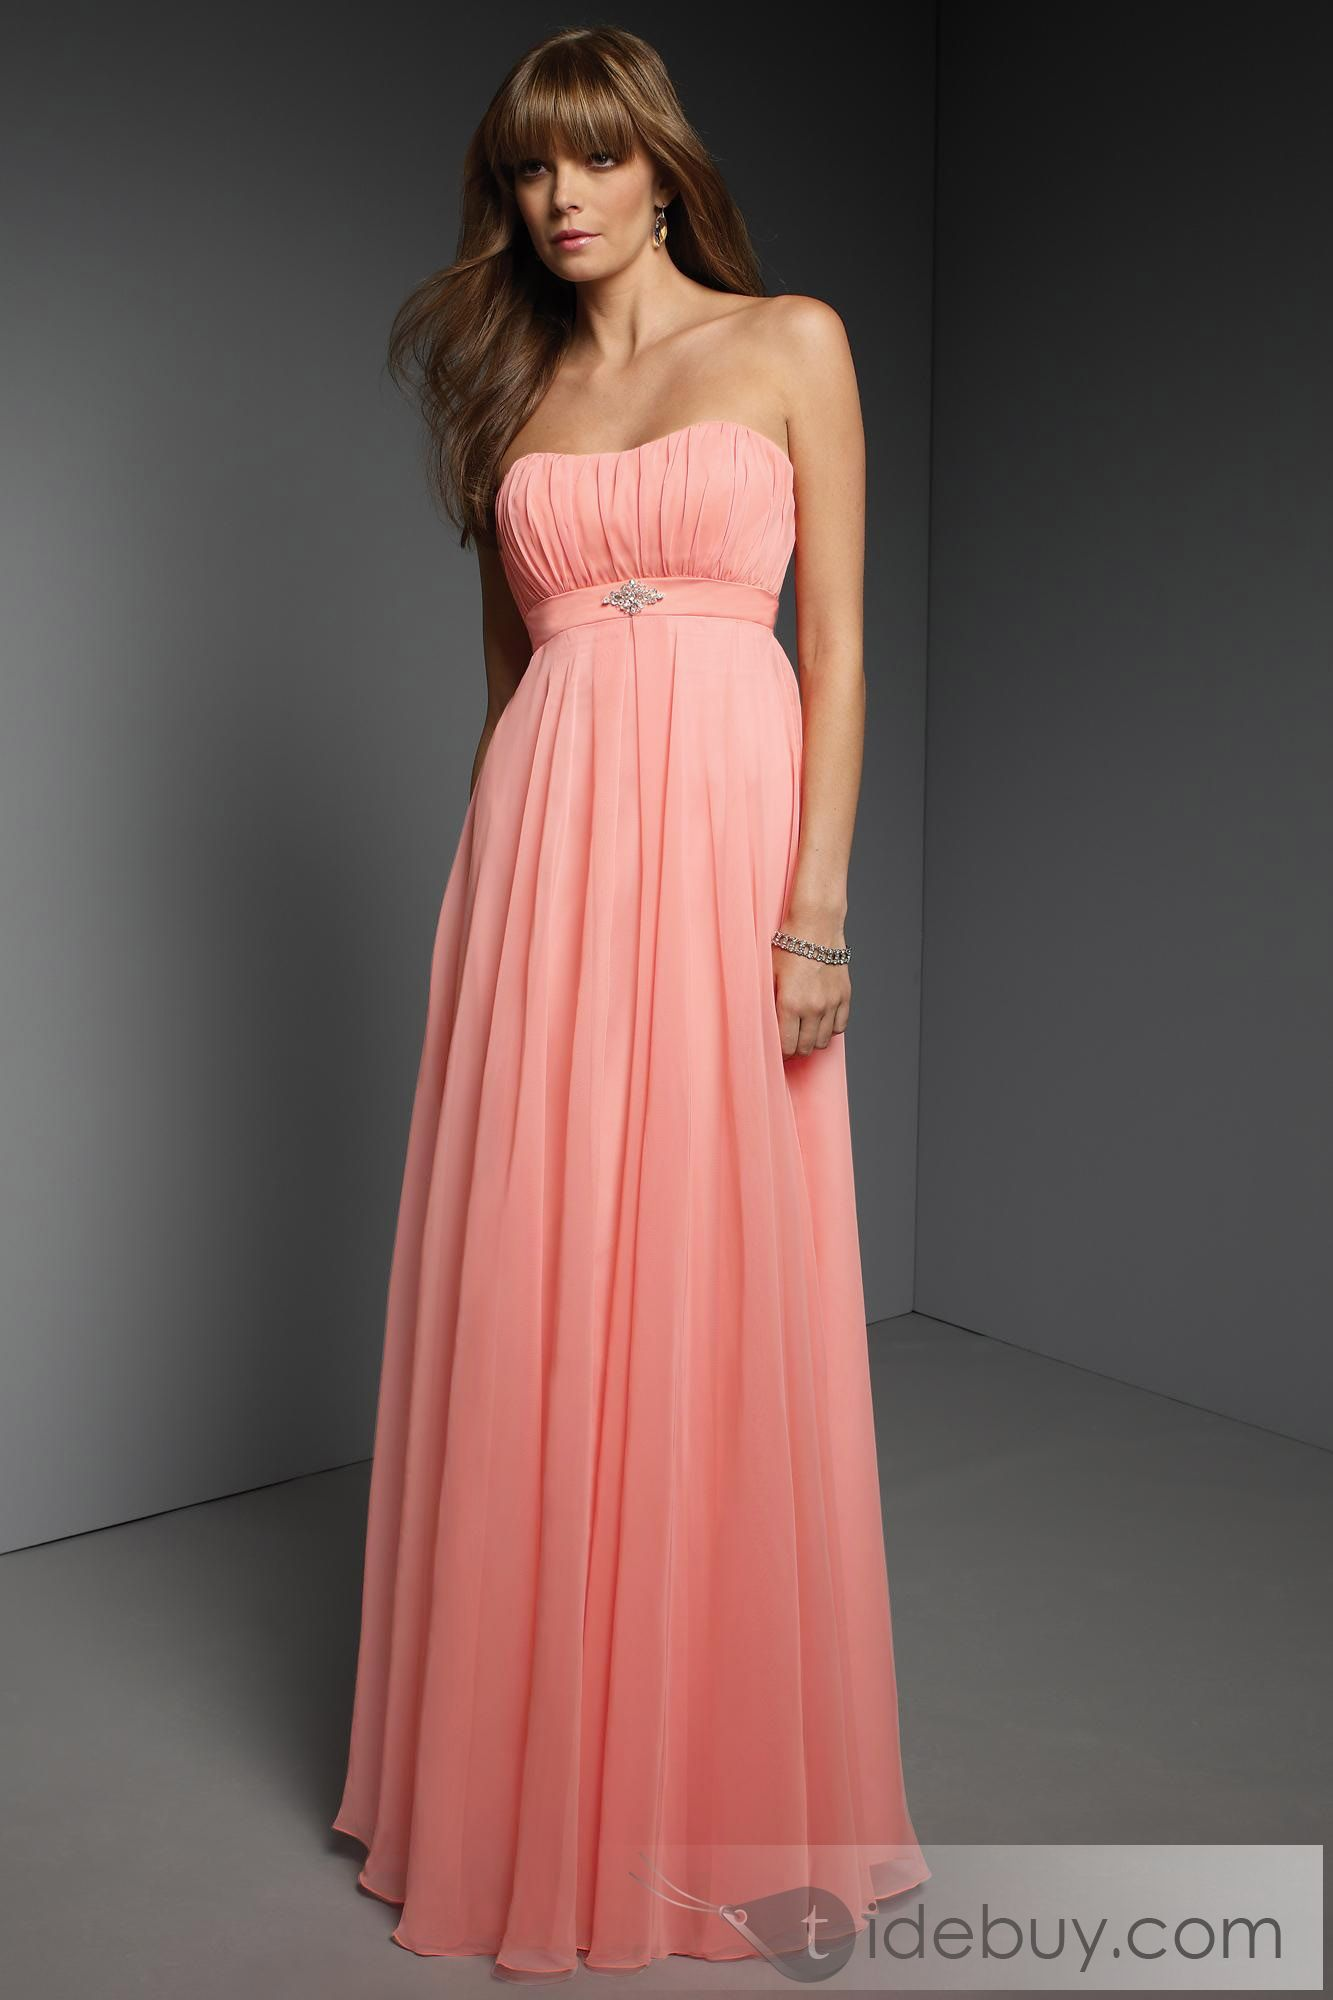 Charming A-Line Strapless Sleeveless Floor Length Bridesmaid Dress ...